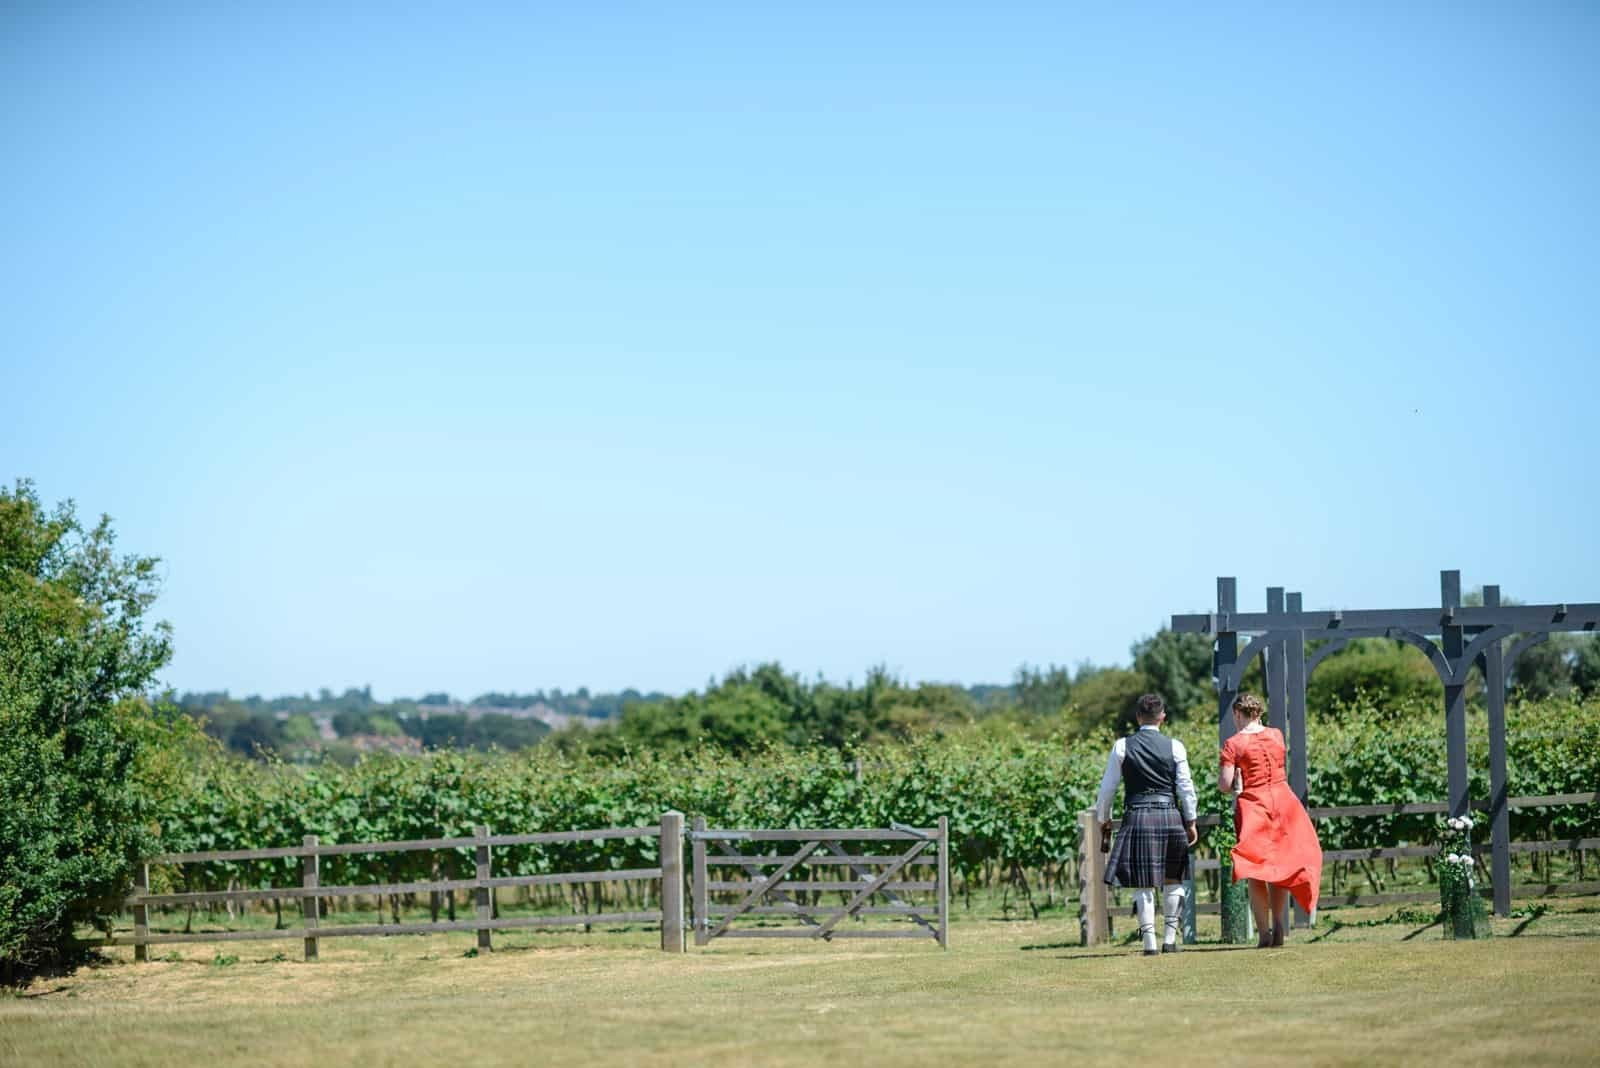 Andy Dane Photography - pergola and vineyard